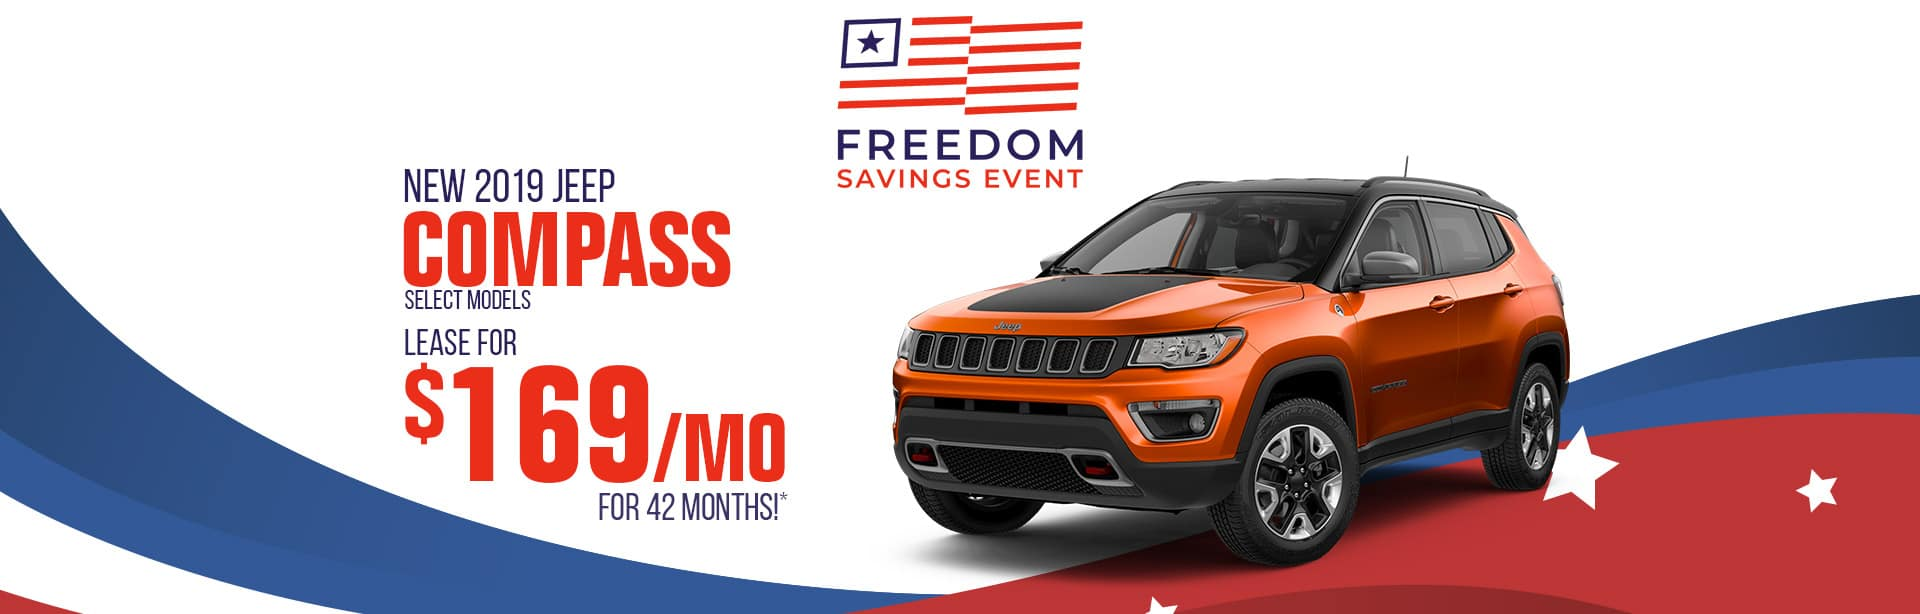 Lease Special on a New Jeep Compass near Terre Haute, Indiana